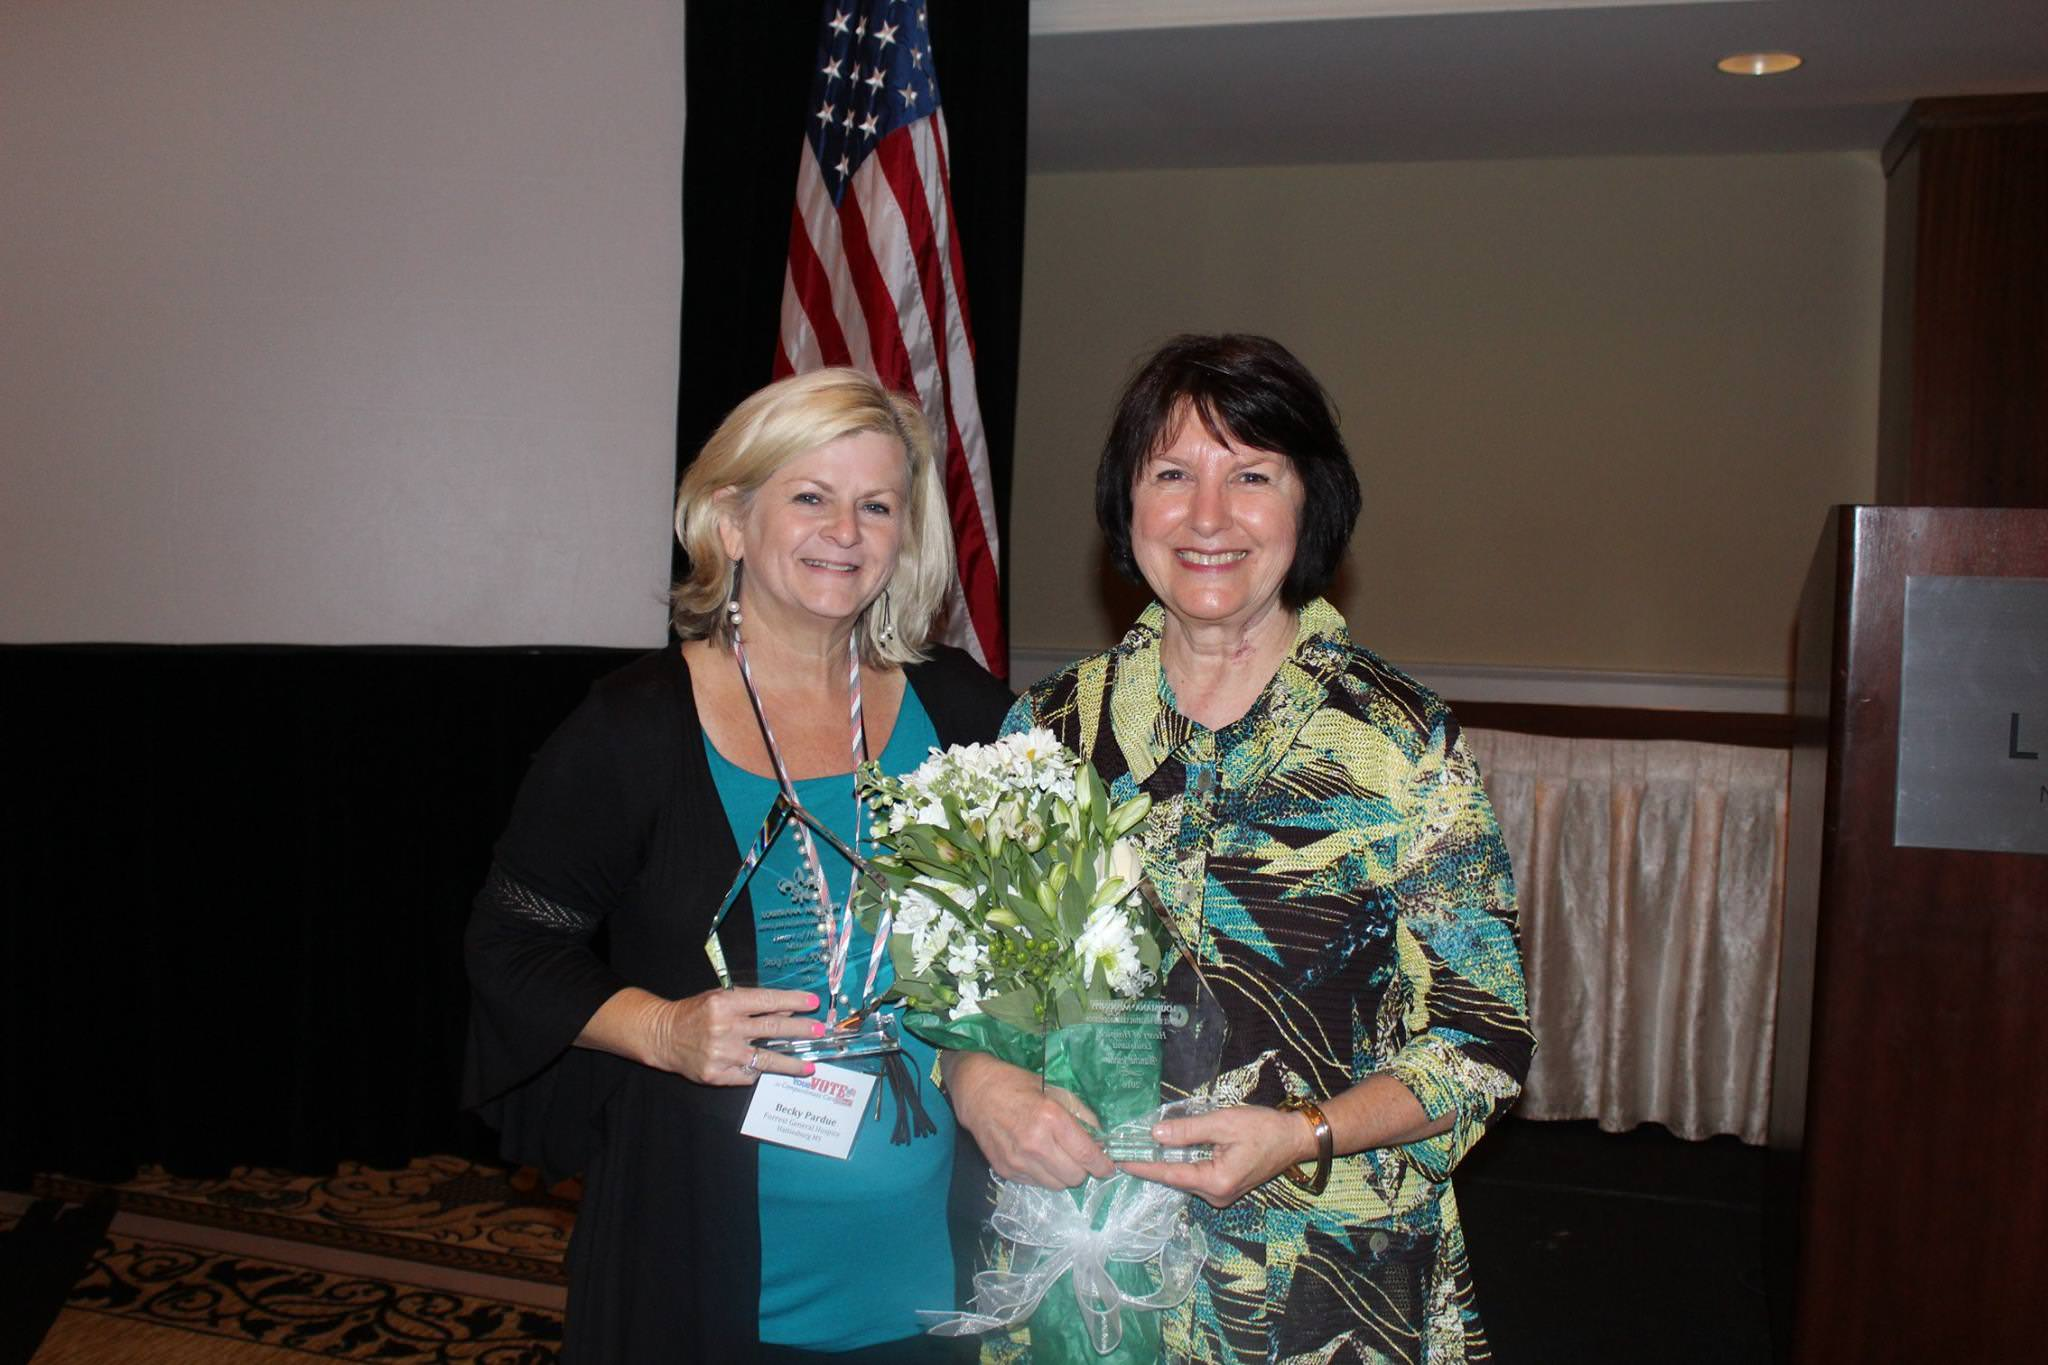 Becky Pardue, Mississippi Winner, and Blanche Jewell, Louisiana Winner